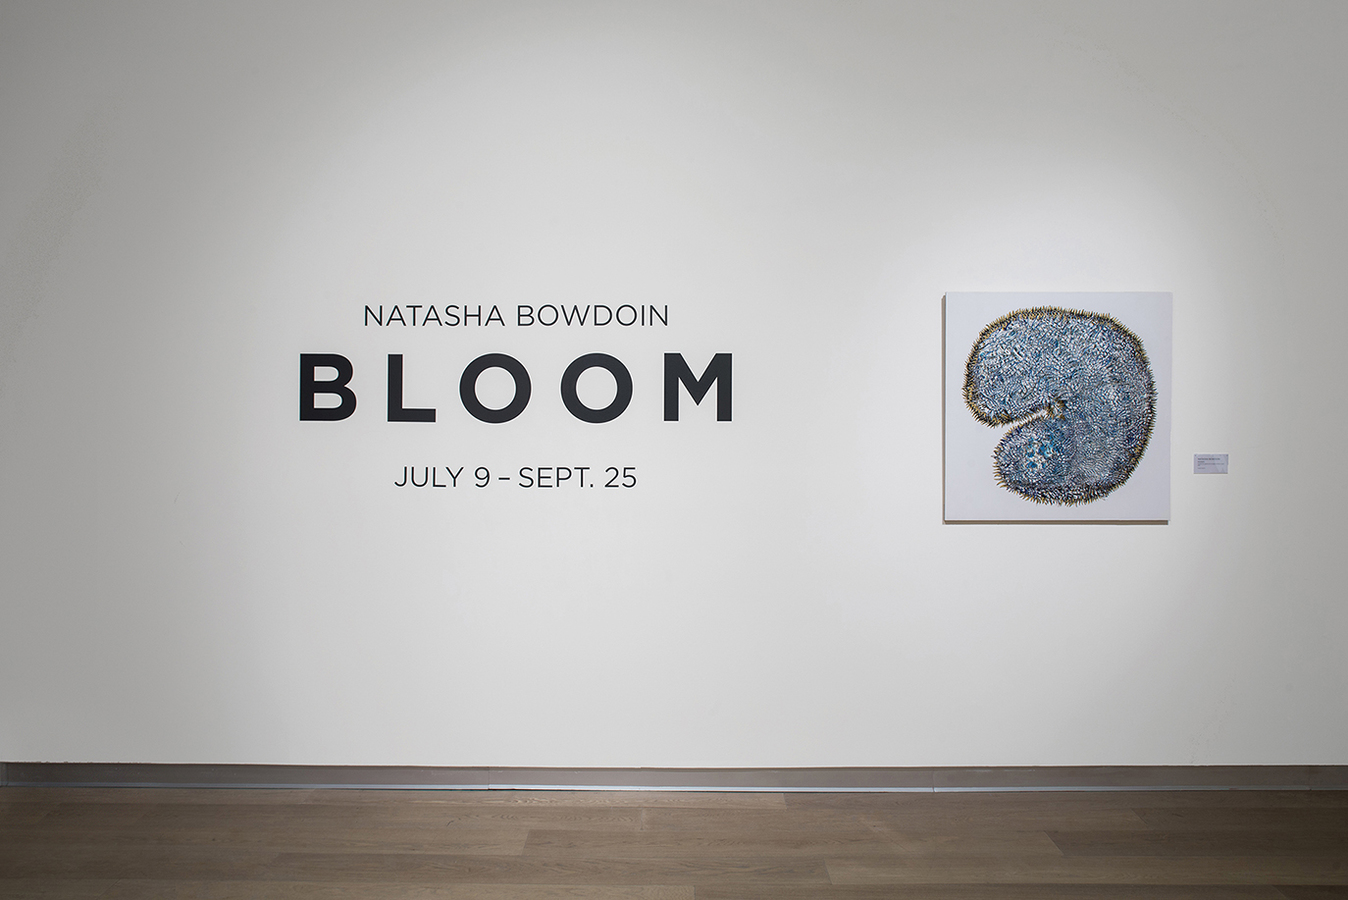 Natasha Bowdoin Bloom 2015